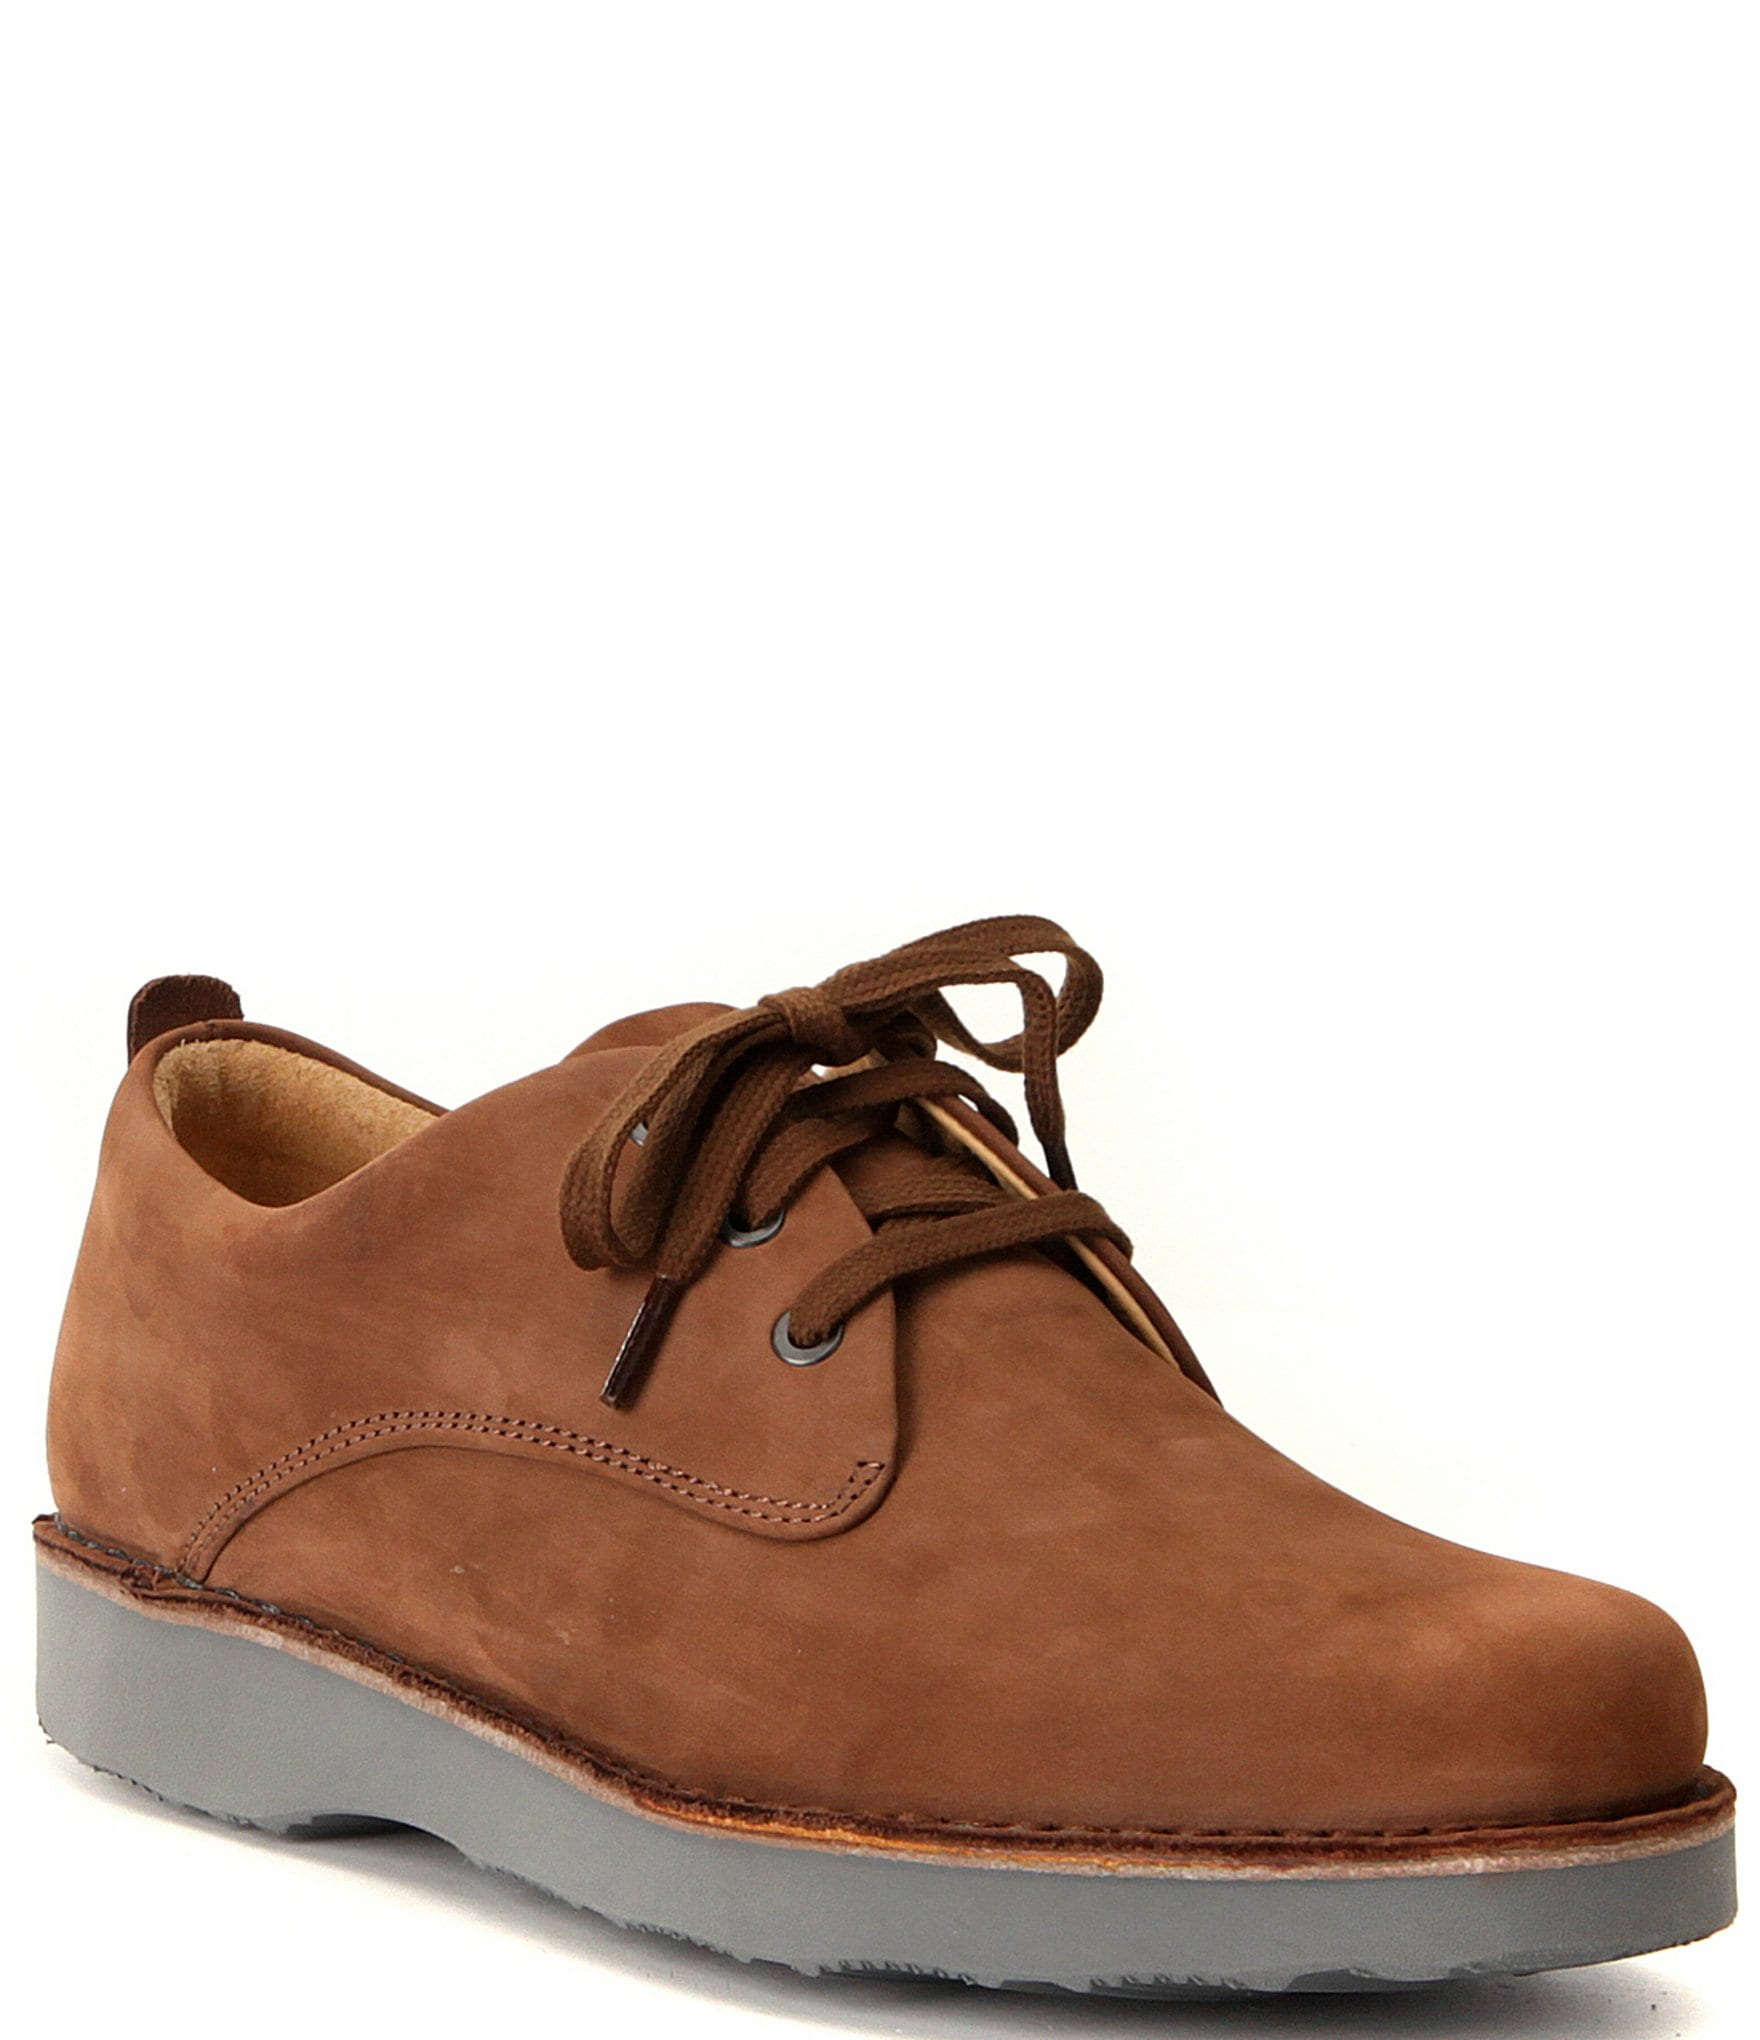 hubbard men ☀ up to 70% off ☀ samuel hubbard 'frequent traveler' slip-on (men) get the latest womens fashion online of new styles every day from dresses, shop womens clothing now #samuel-hubbard-frequent-traveler-slip-on-men #mens-comfort-shoes ★★★★★ 226 reviews.